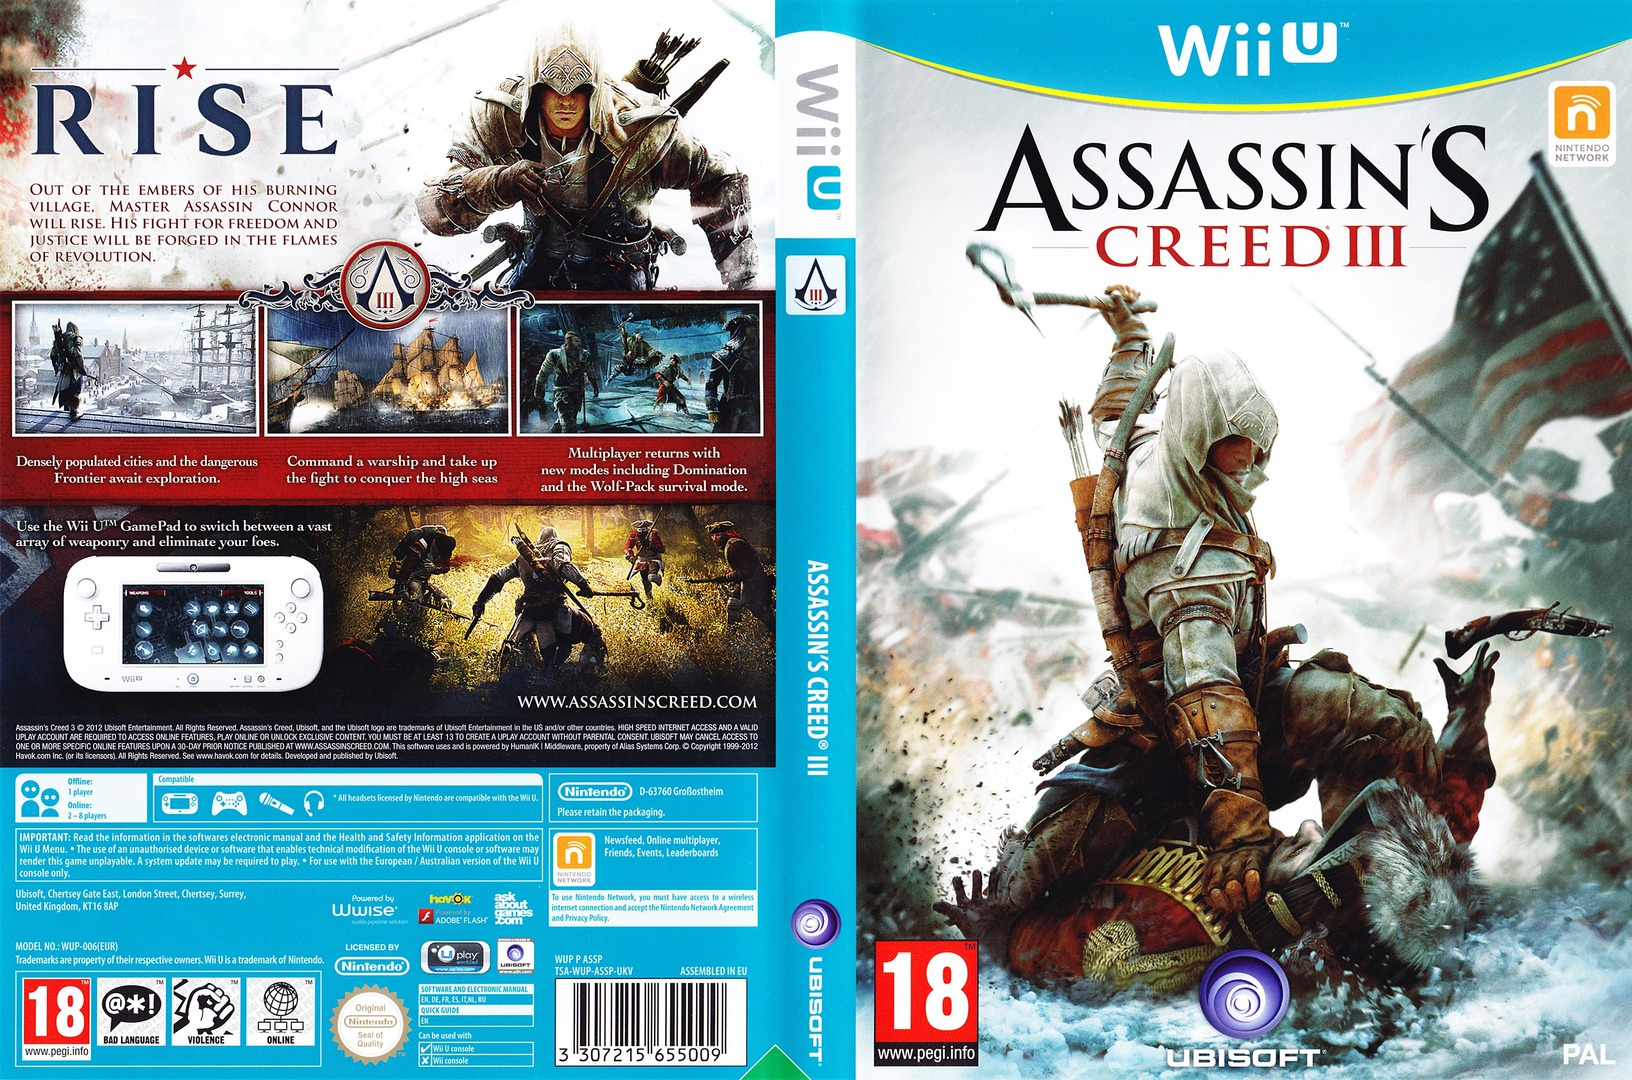 Assassin's Creed III WiiU coverfullHQ (ASSP41)